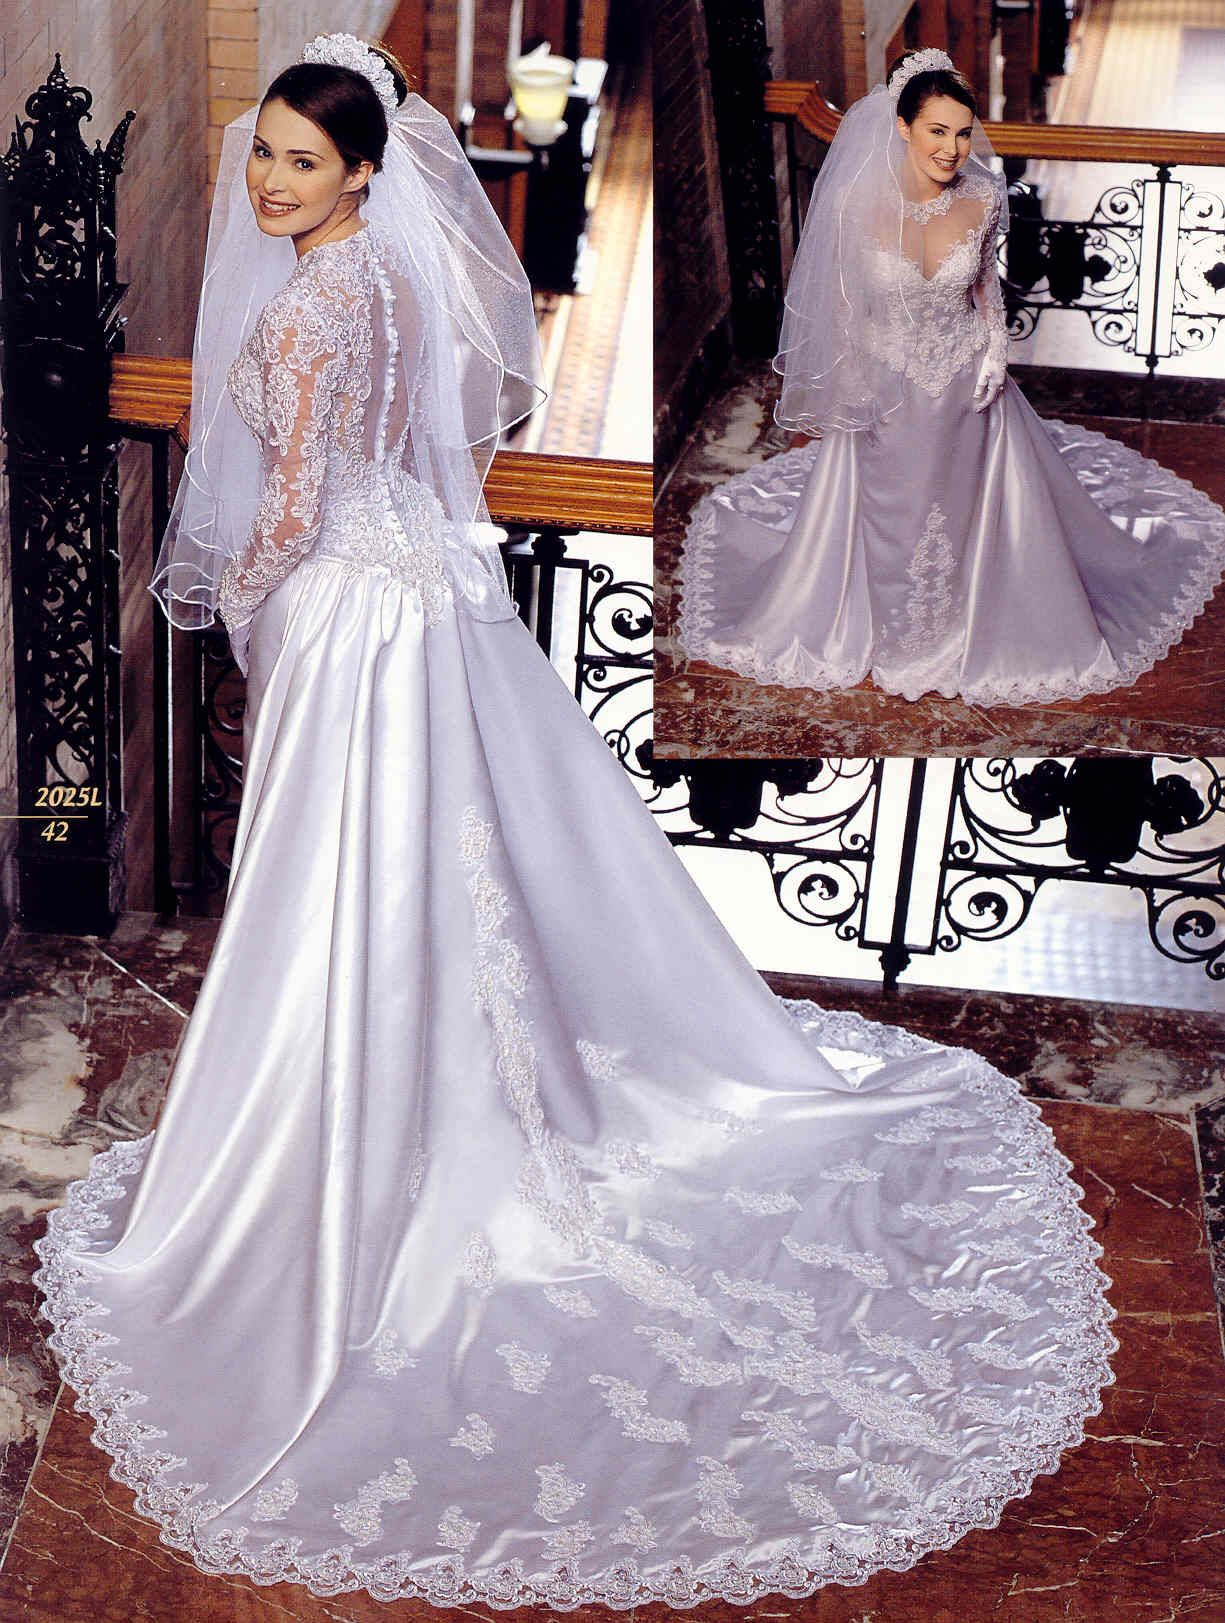 Same gown but with sleeves the veil is different than the one